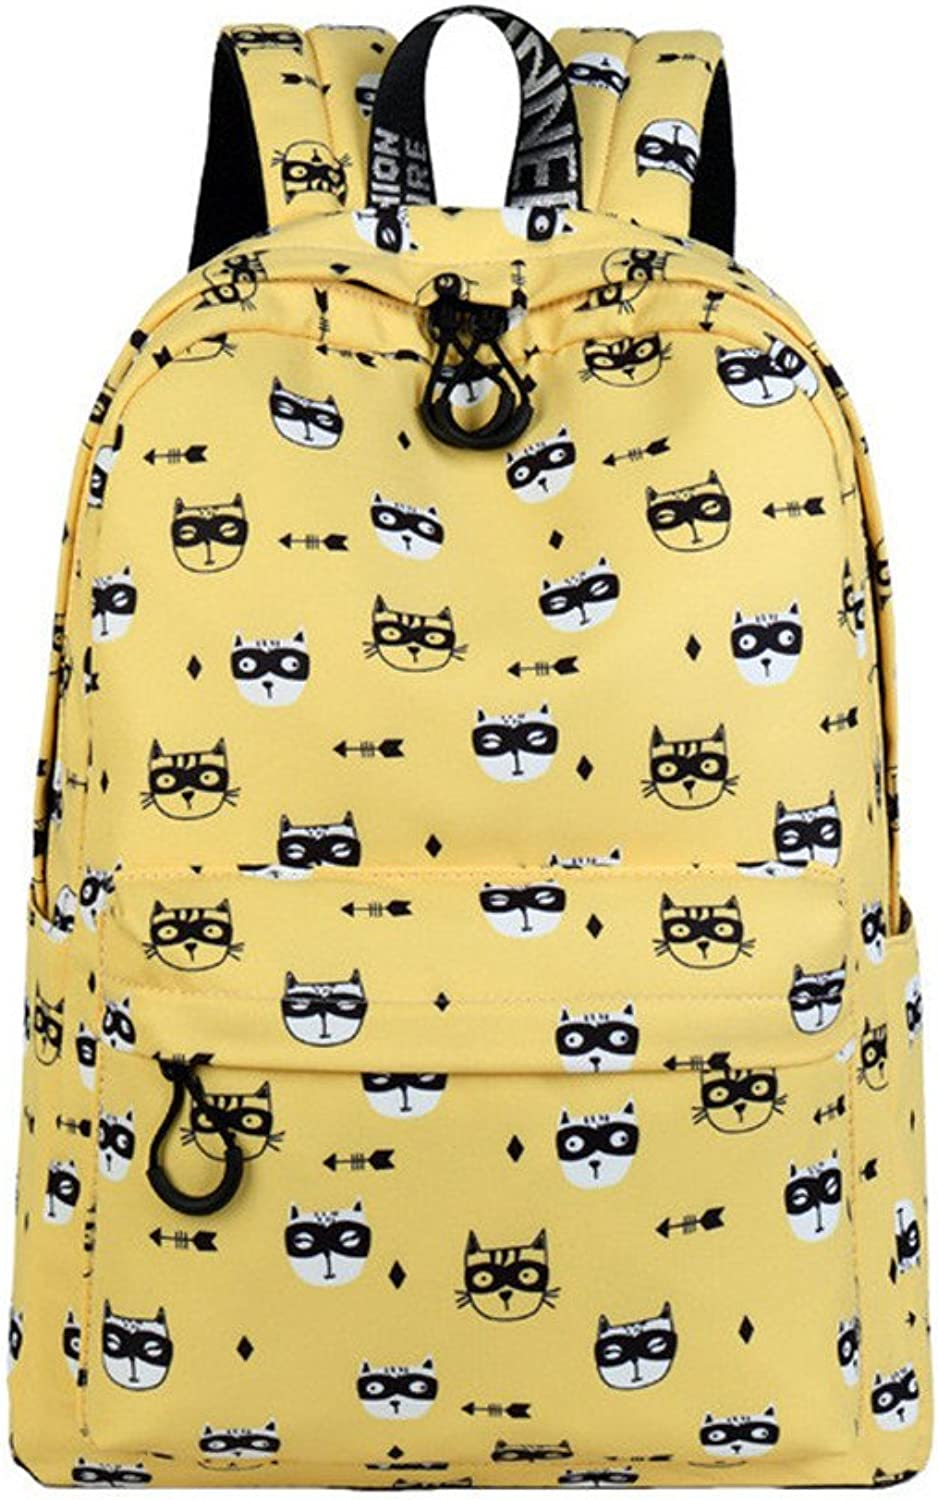 Cute Waterproof Polyester Women Backpack Glasses Cat Pattern Printing Girls College Latop Bookbags Yellow 15 Inches